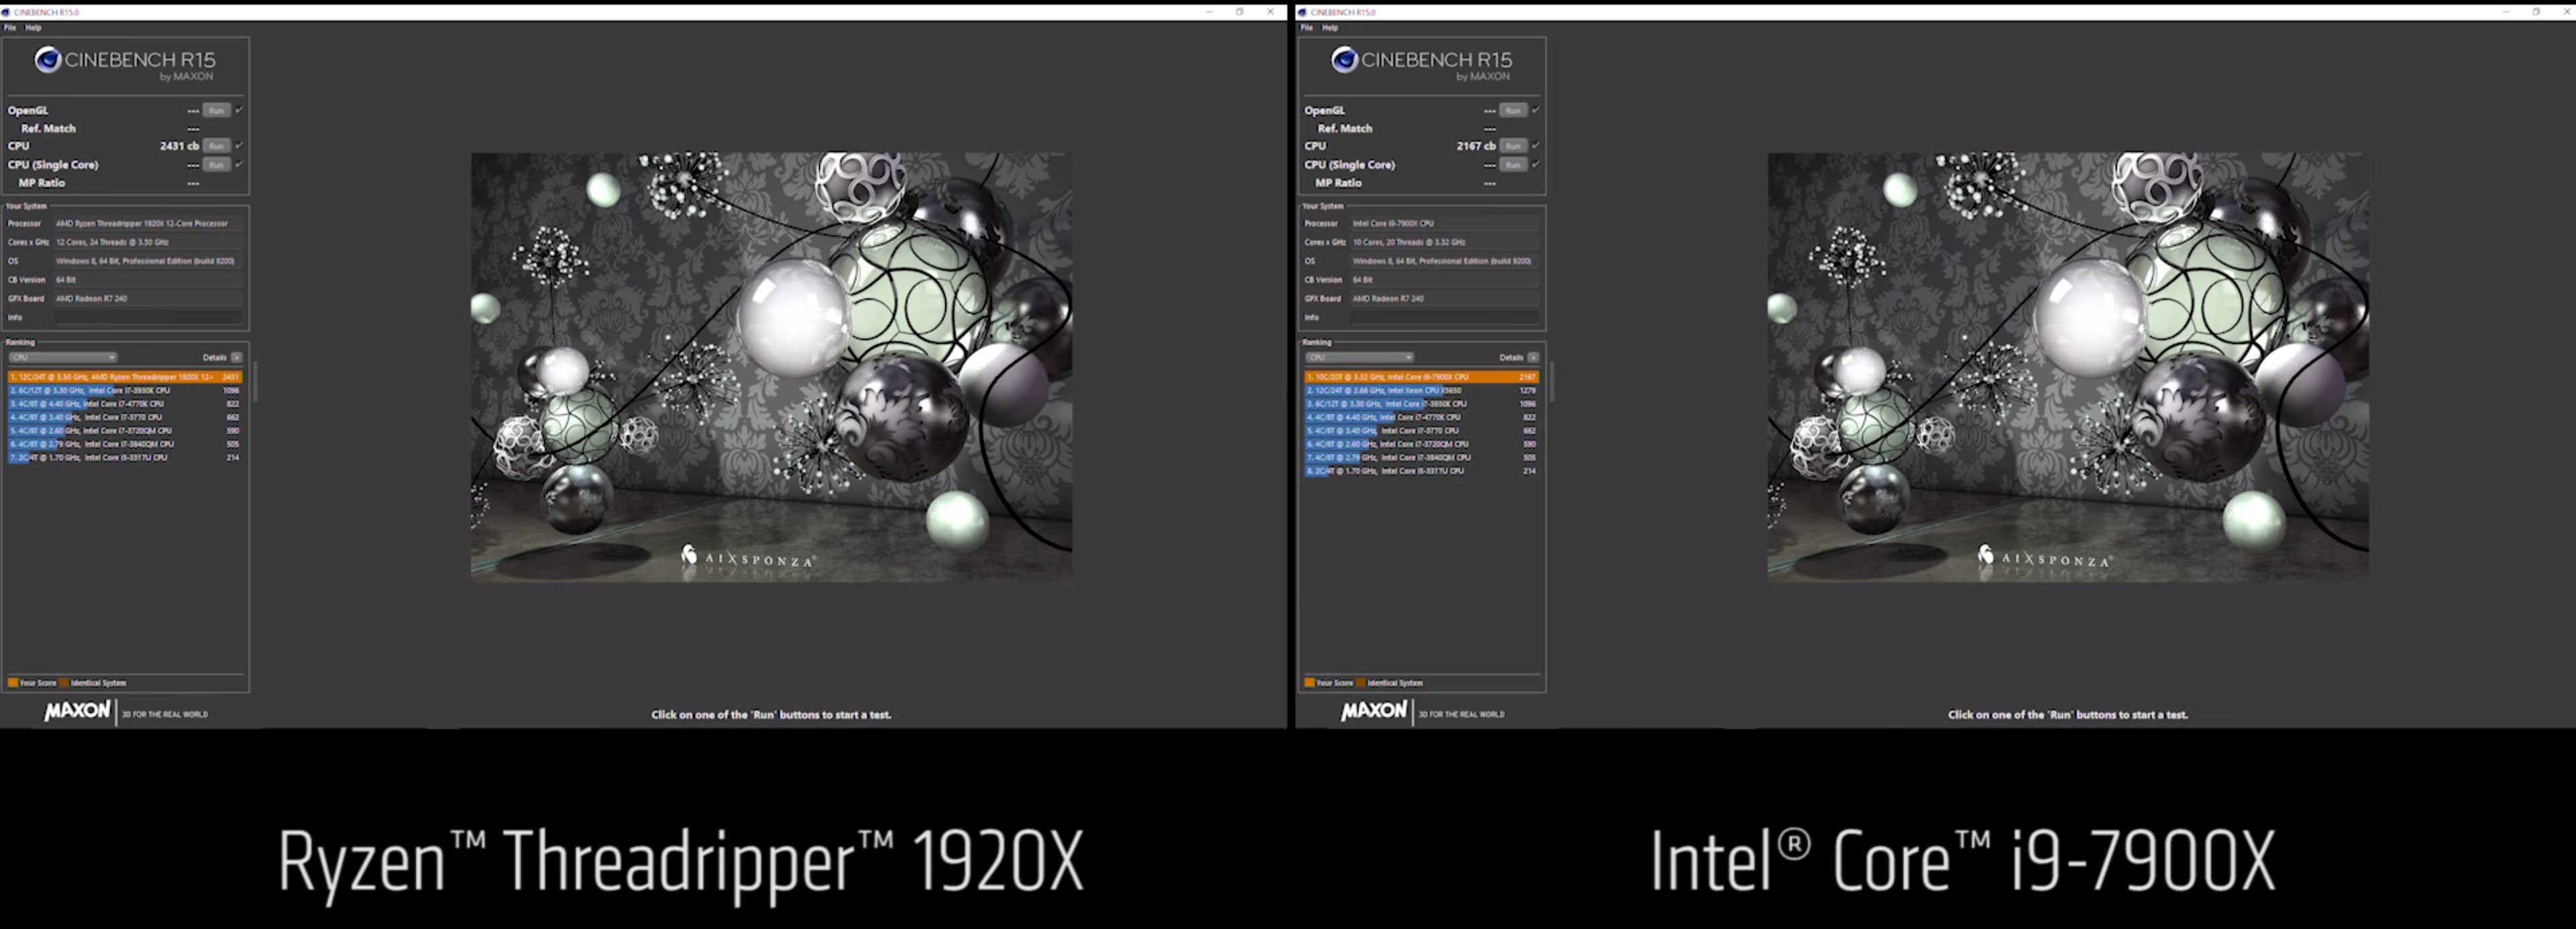 Processeur AMD Ryzen Threadripper 1920X en action sous Cinebench R15